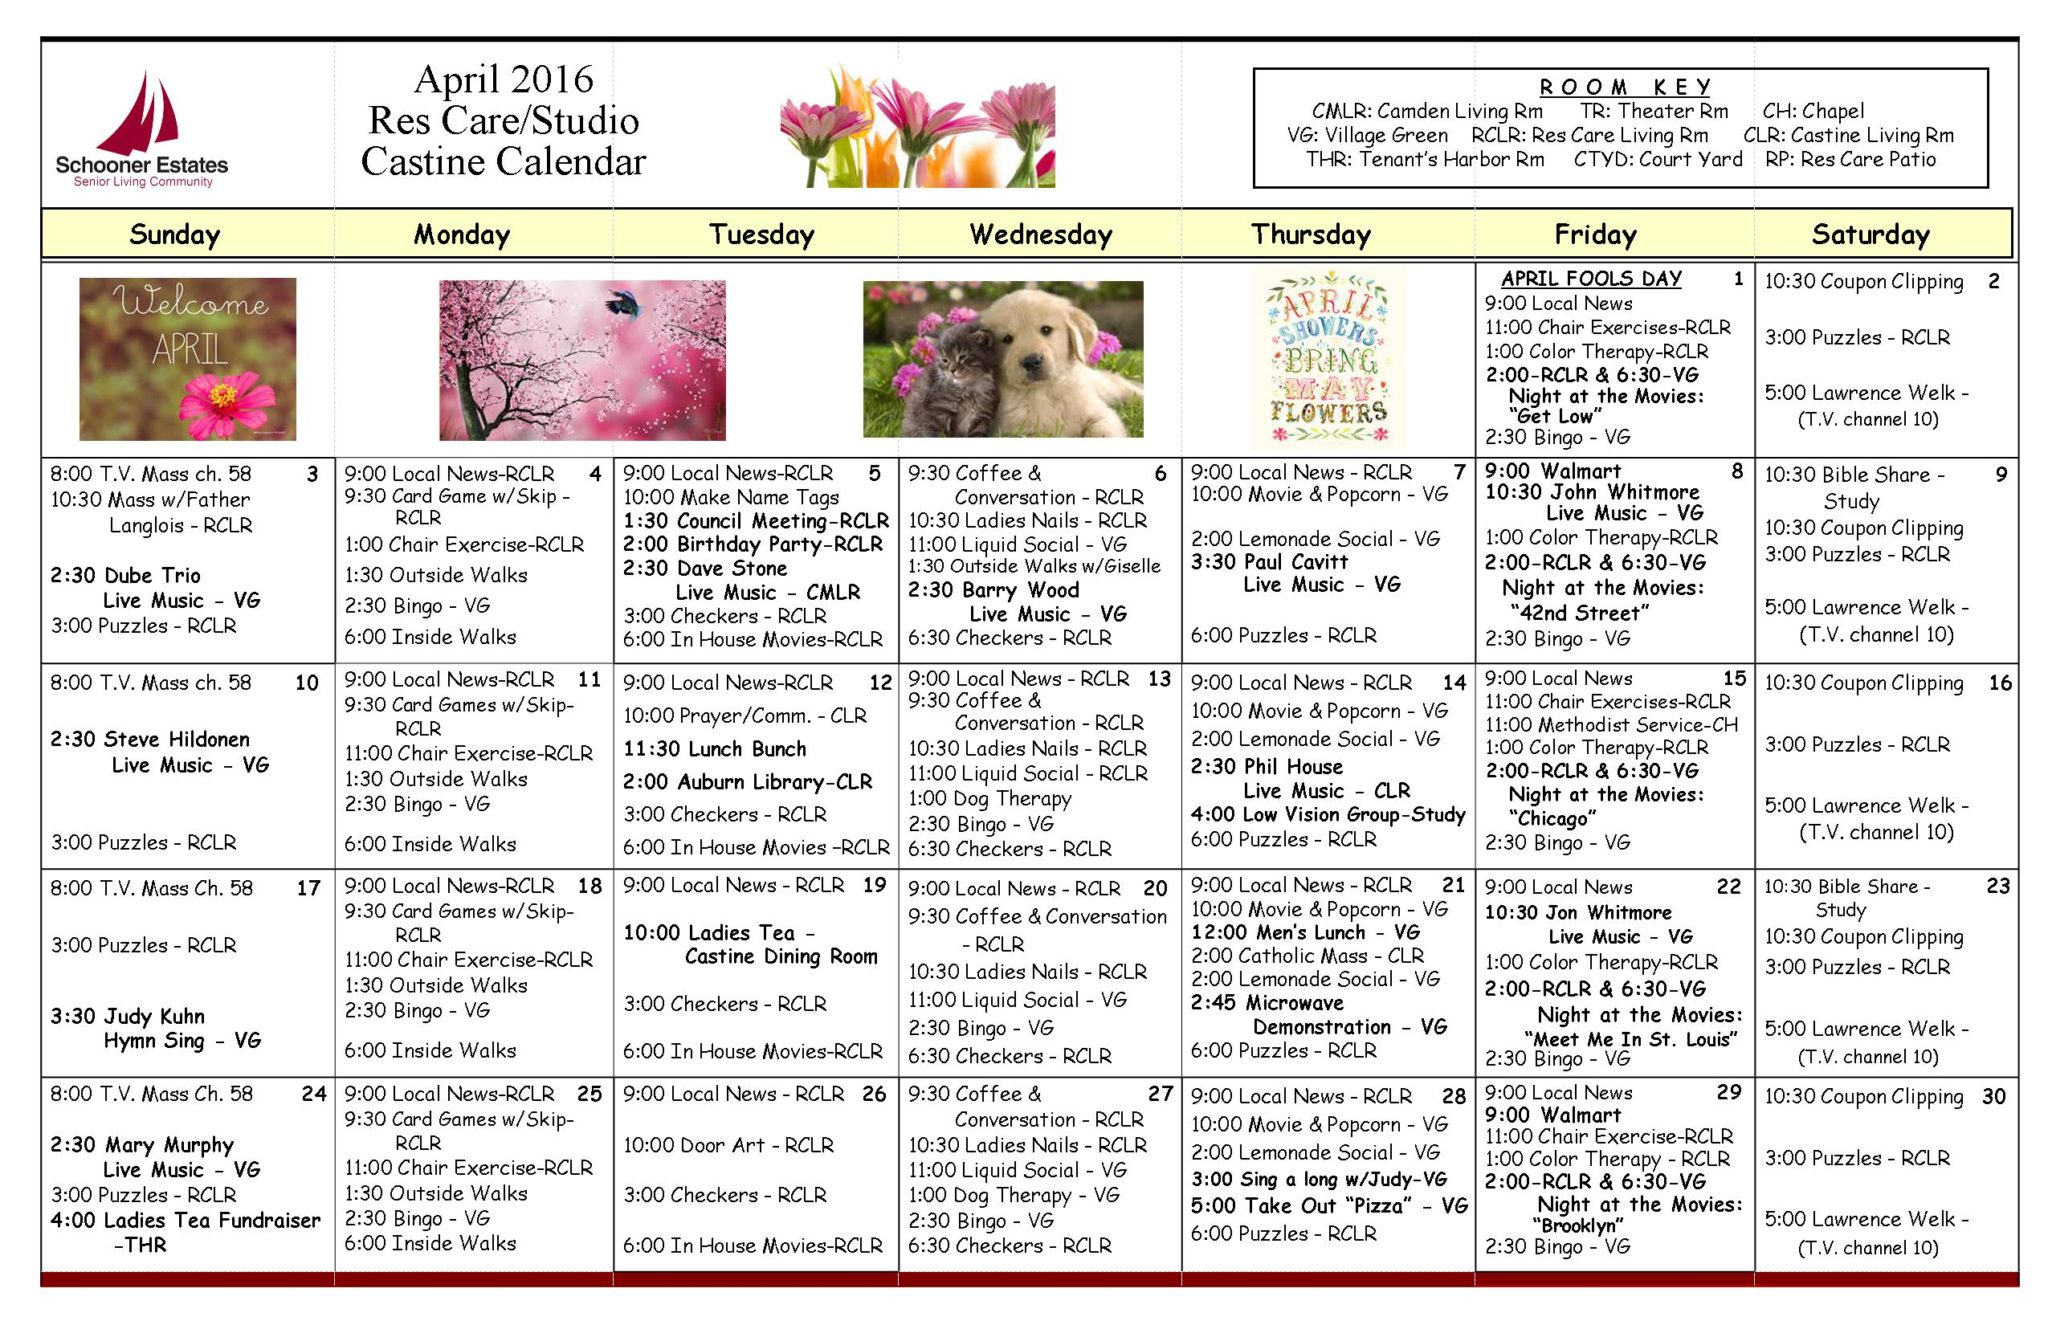 April 2016 Assisted Living and Residential Care Activity Calendar